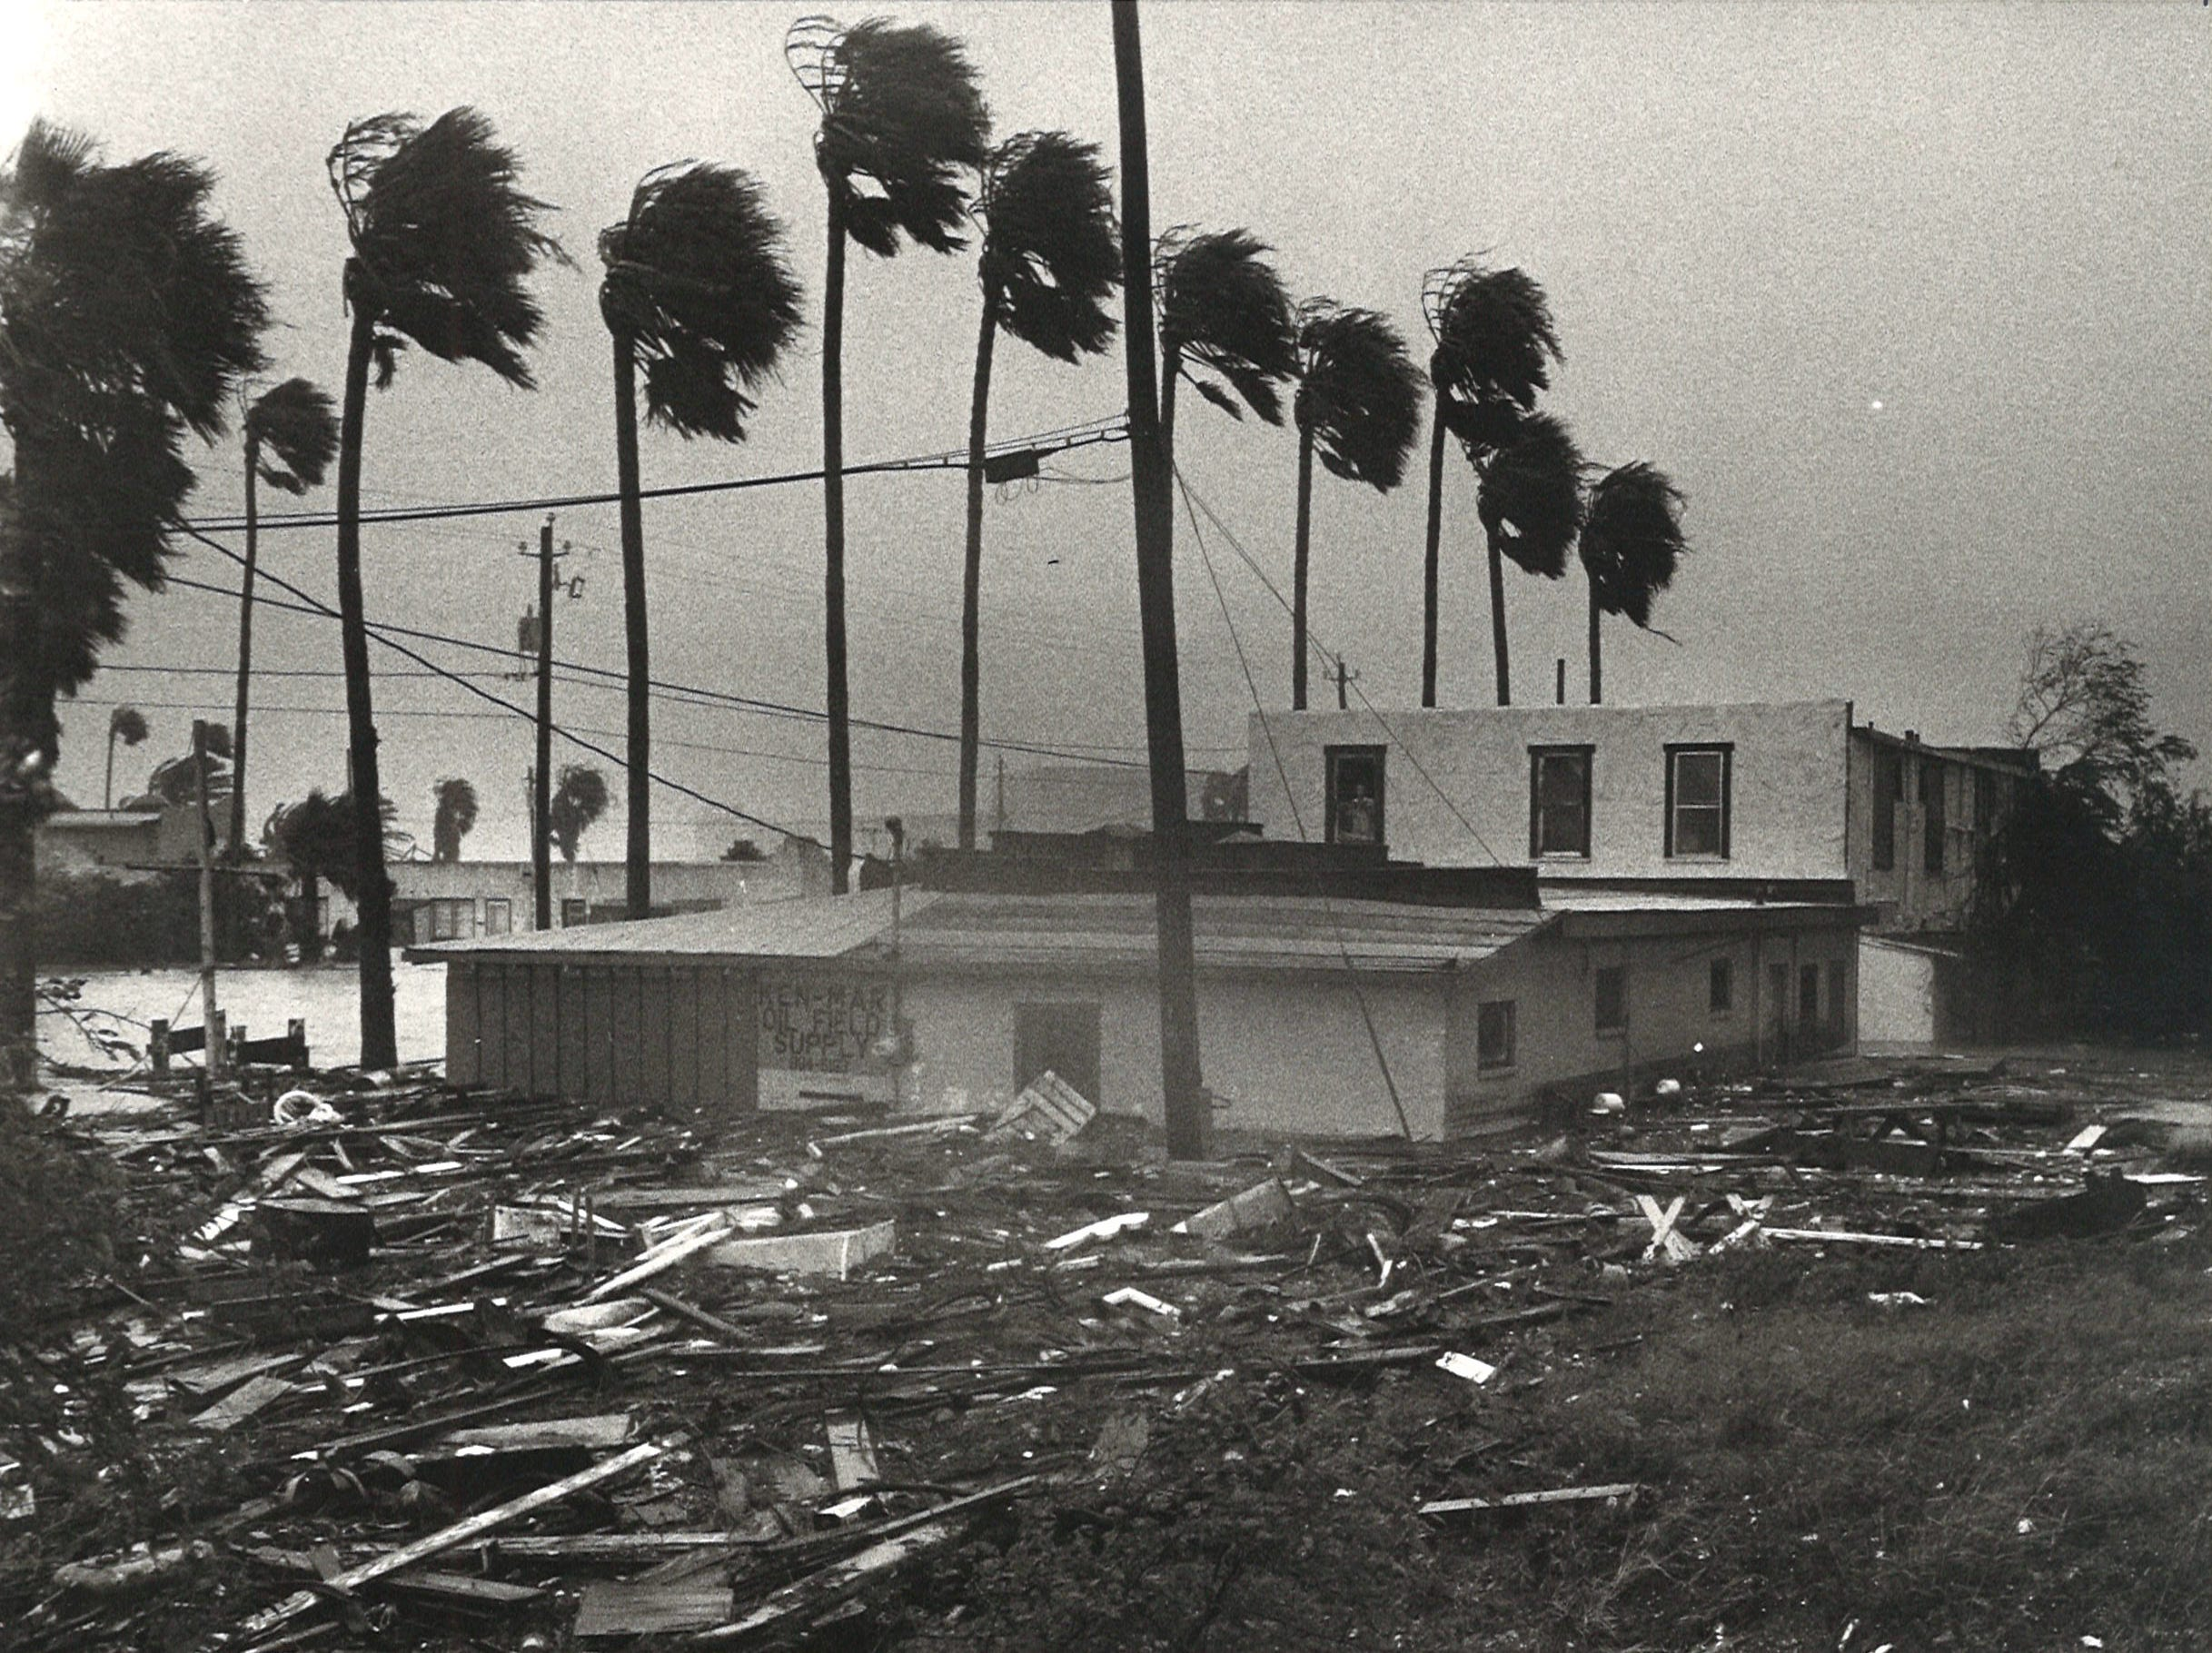 Water pushes debris past Surfside Blvd. on Corpus Christi's North Beach as Hurricane Allen hit near Brownsville in 1980. When this photo was taken about noon on Aug. 10, the water for 4-5 feet deep.